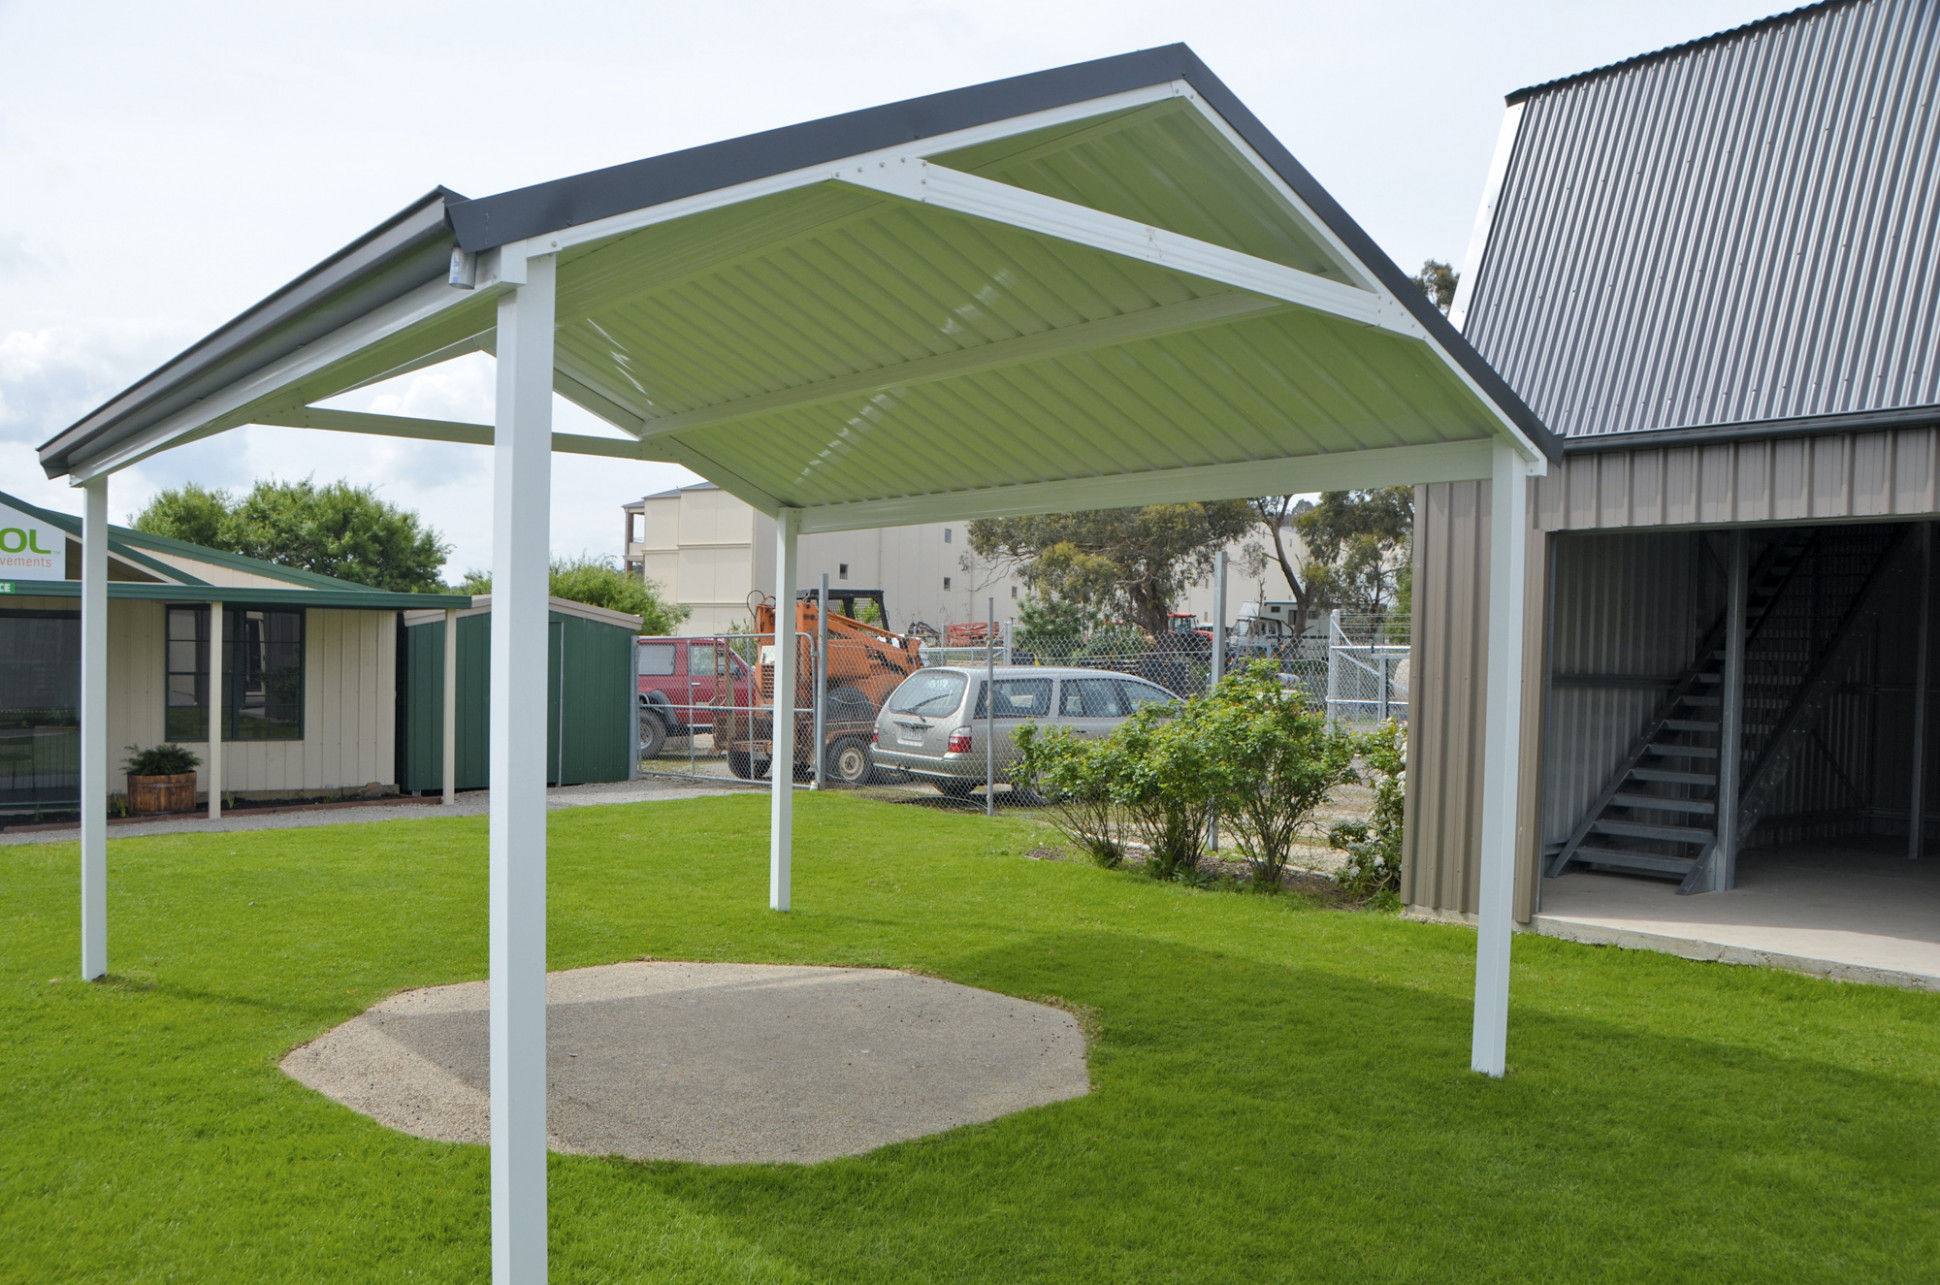 SOL Home Improvements, Gallery Of Steel Roof Styles Carport Attached To Hip Roof